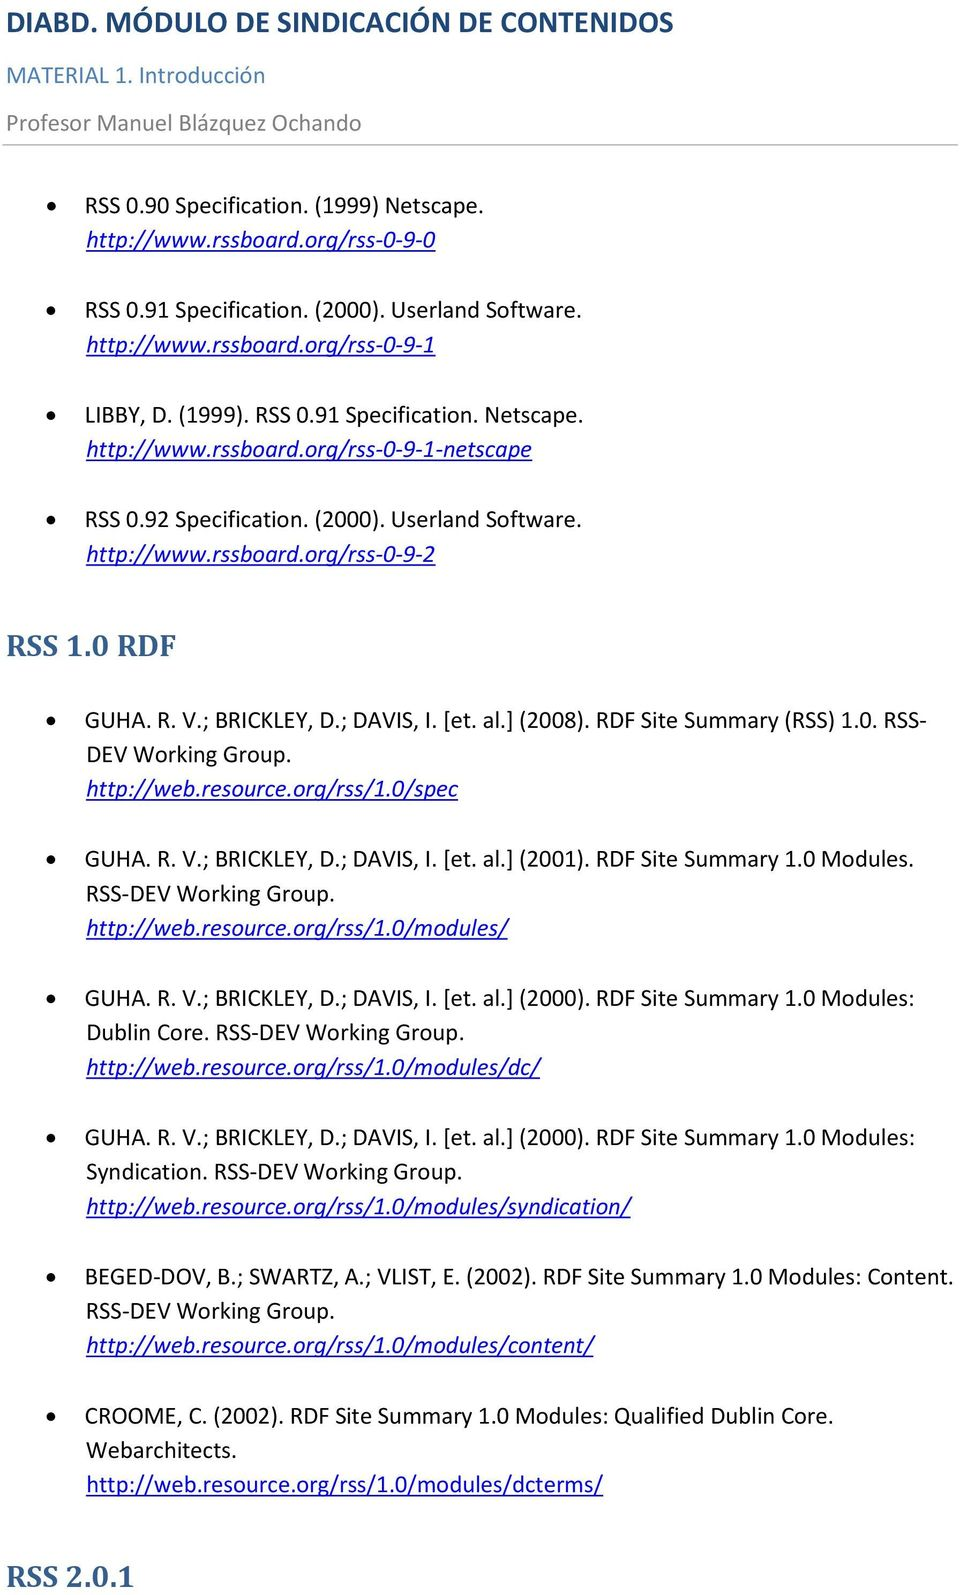 http://web.resource.org/rss/1.0/spec GUHA. R. V.; BRICKLEY, D.; DAVIS, I. [et. al.] (2001). RDF Site Summary 1.0 Modules. RSS-DEV Working Group. http://web.resource.org/rss/1.0/modules/ GUHA. R. V.; BRICKLEY, D.; DAVIS, I. [et. al.] (2000).